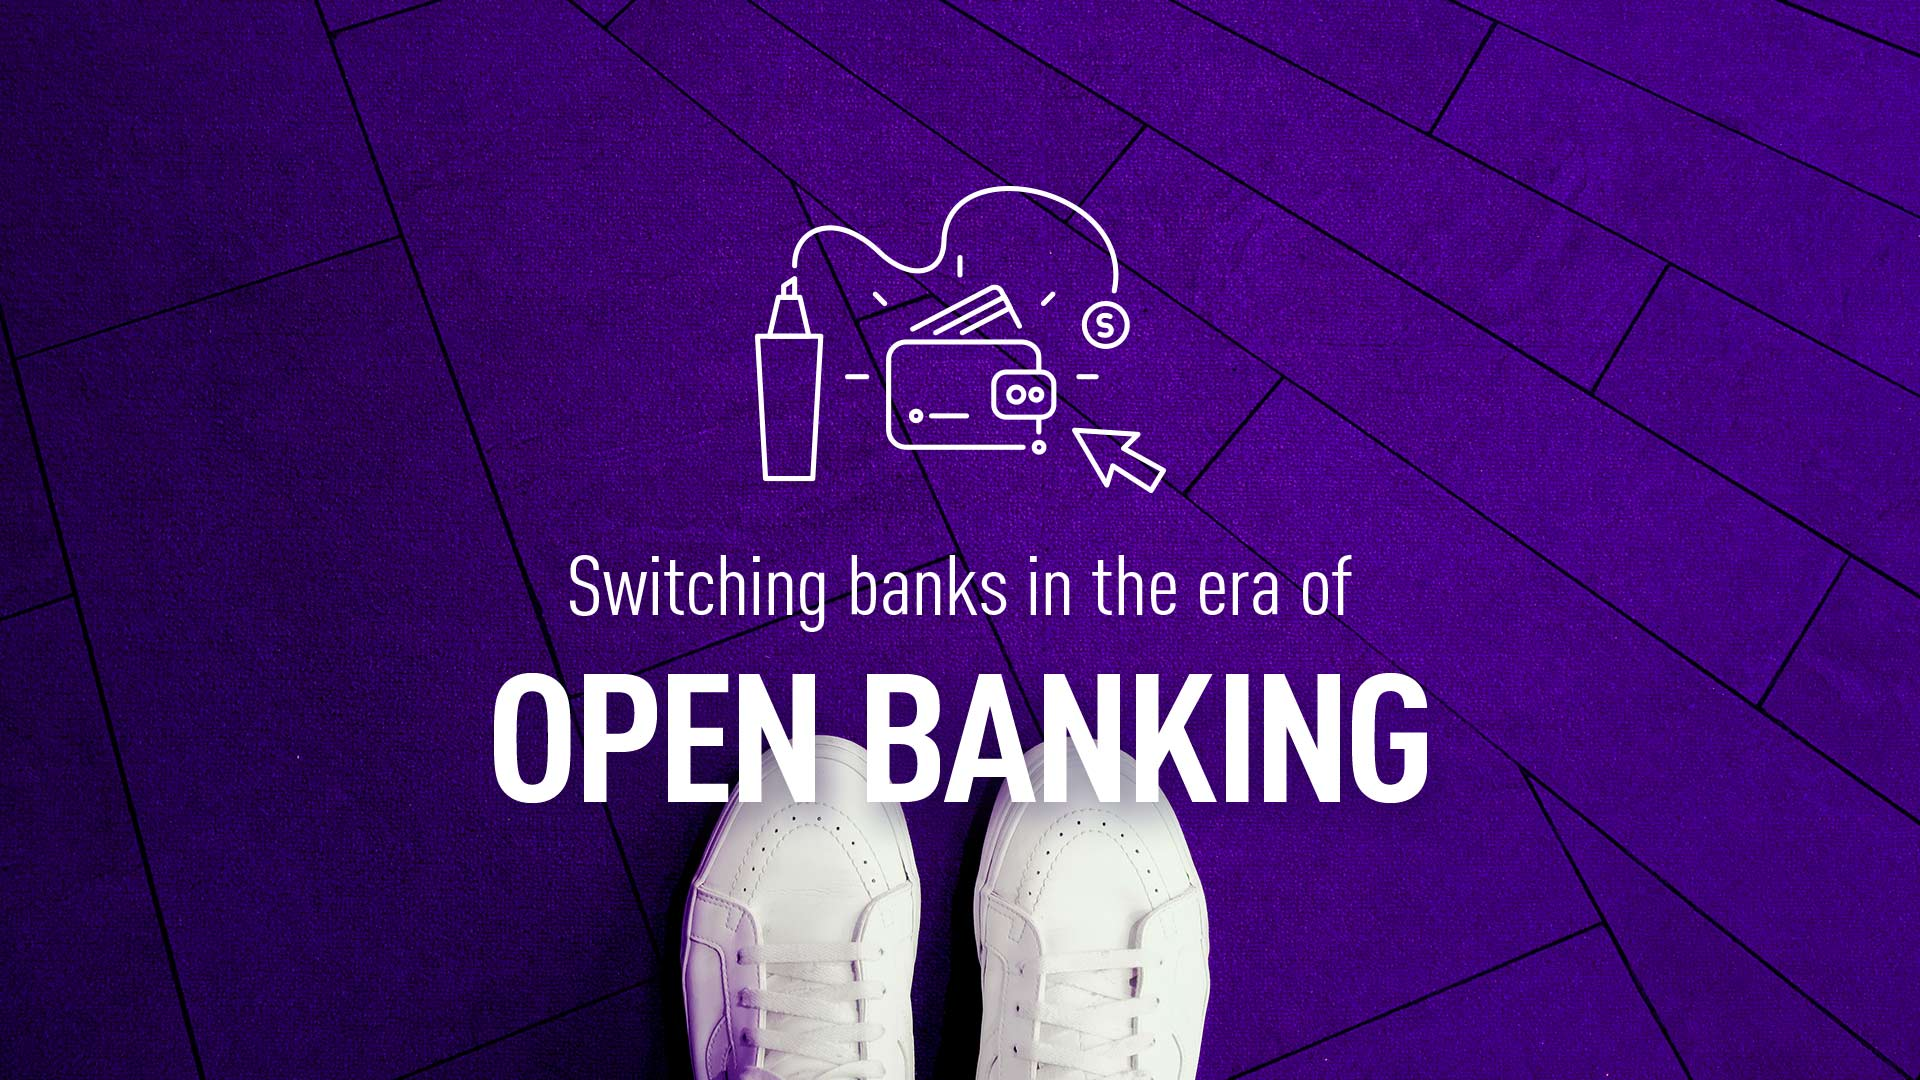 Switching banks in the era of Open Banking